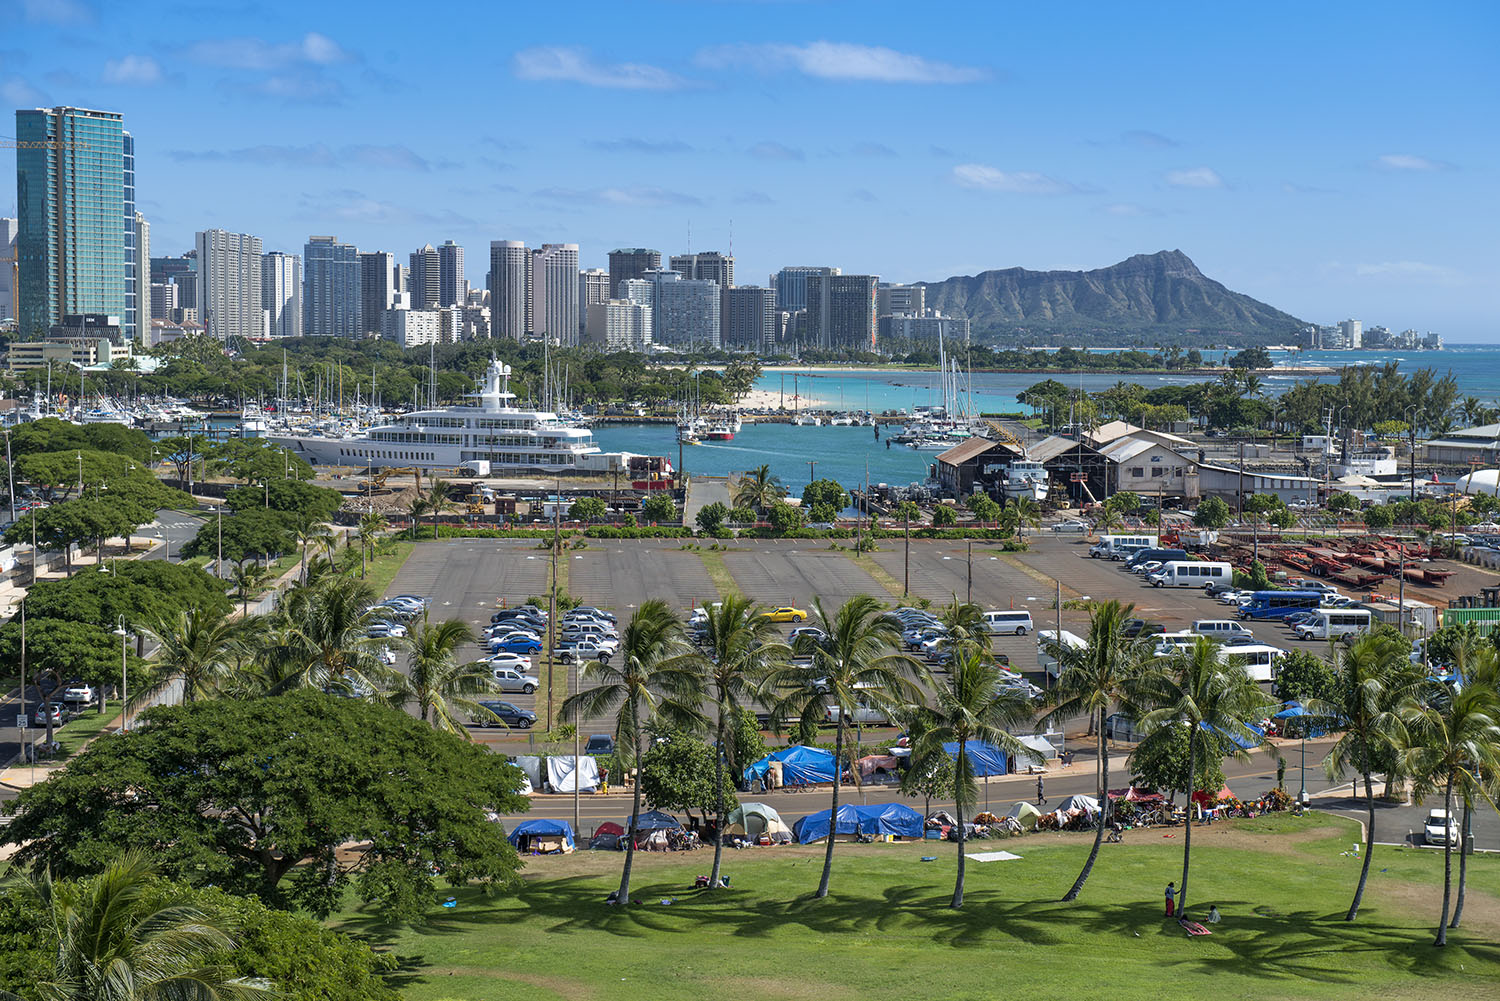 <p>Hundreds of homeless people, including many Micronesians, set up camp in the Kakaako area near downtown Honolulu. The city has worked to clear the area, but homelessness persists.</p>